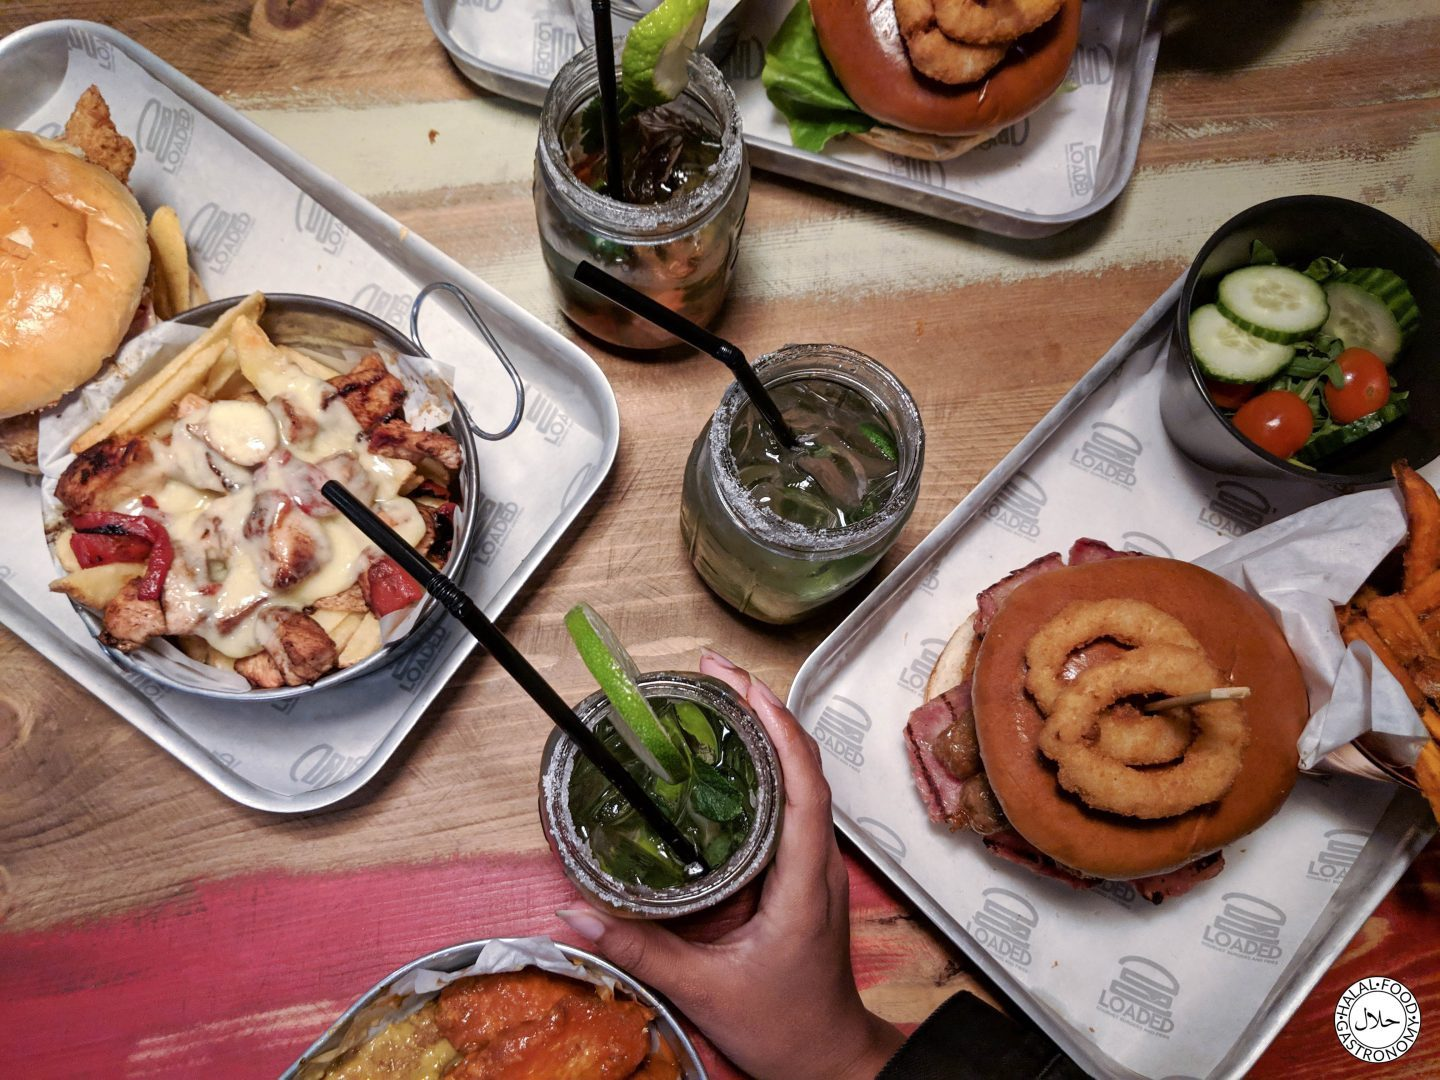 Loaded Gourmet Burgers and Fries – Liverpool